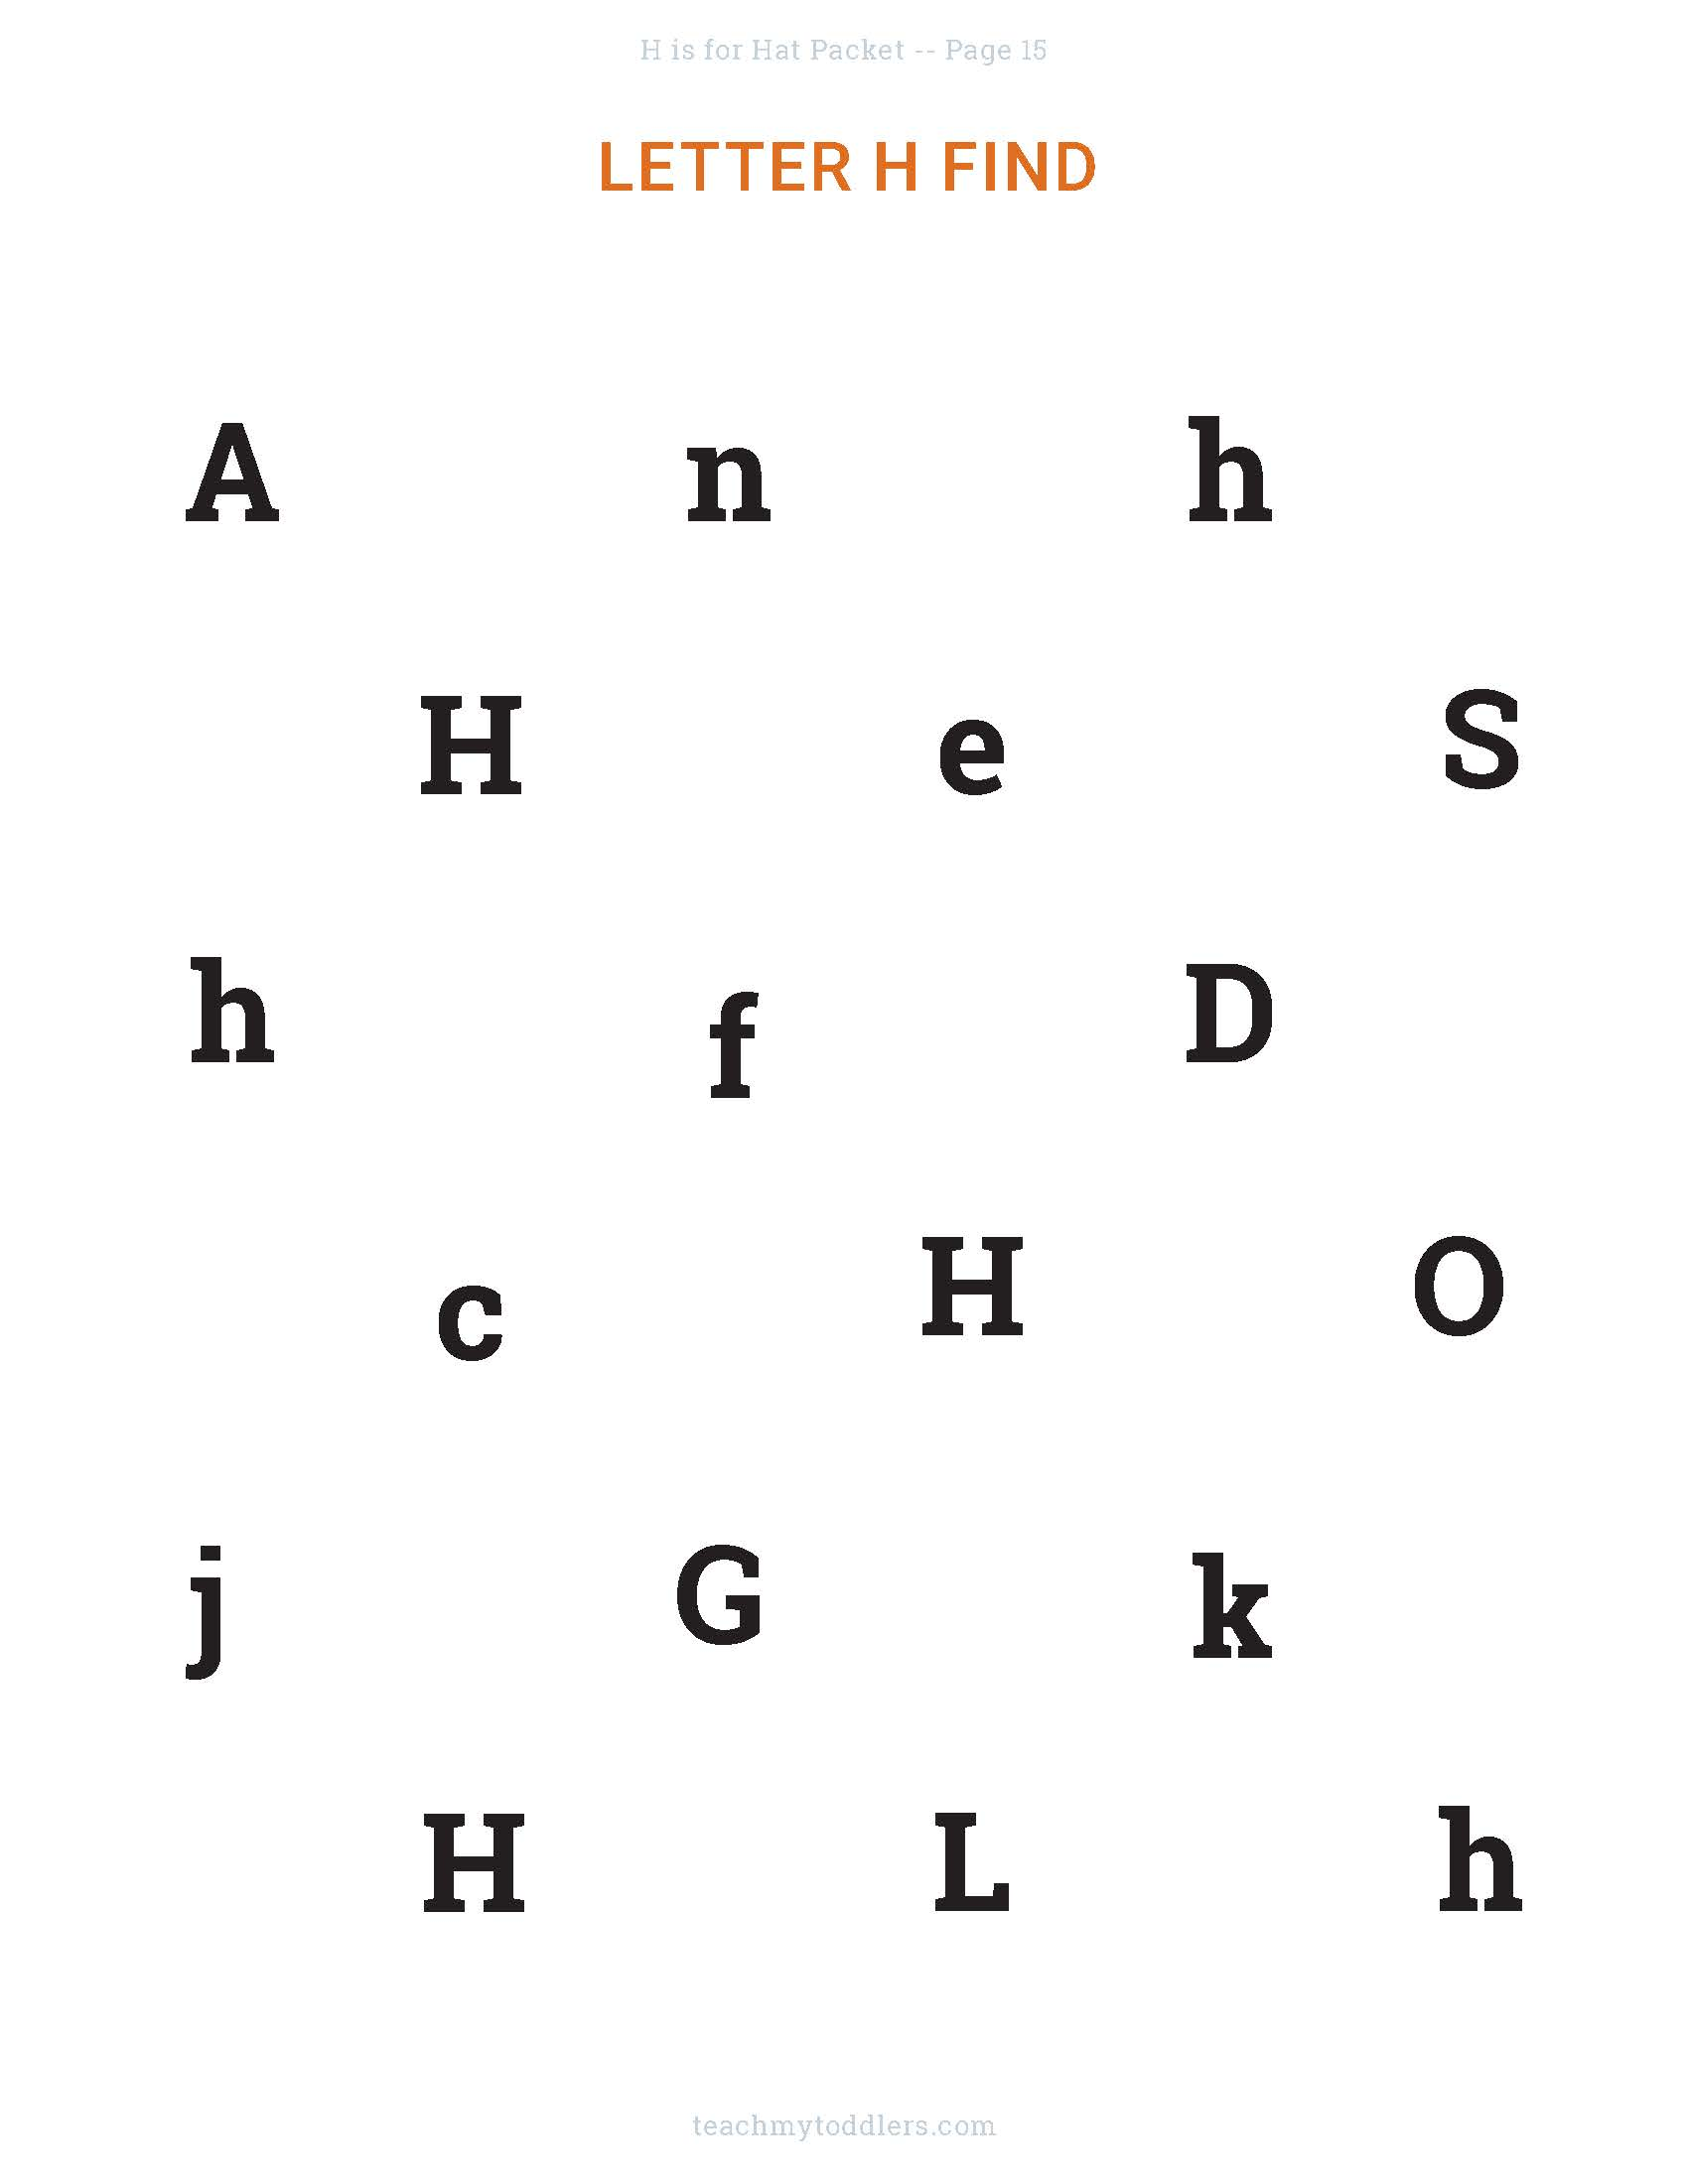 Letter H find the letter activity